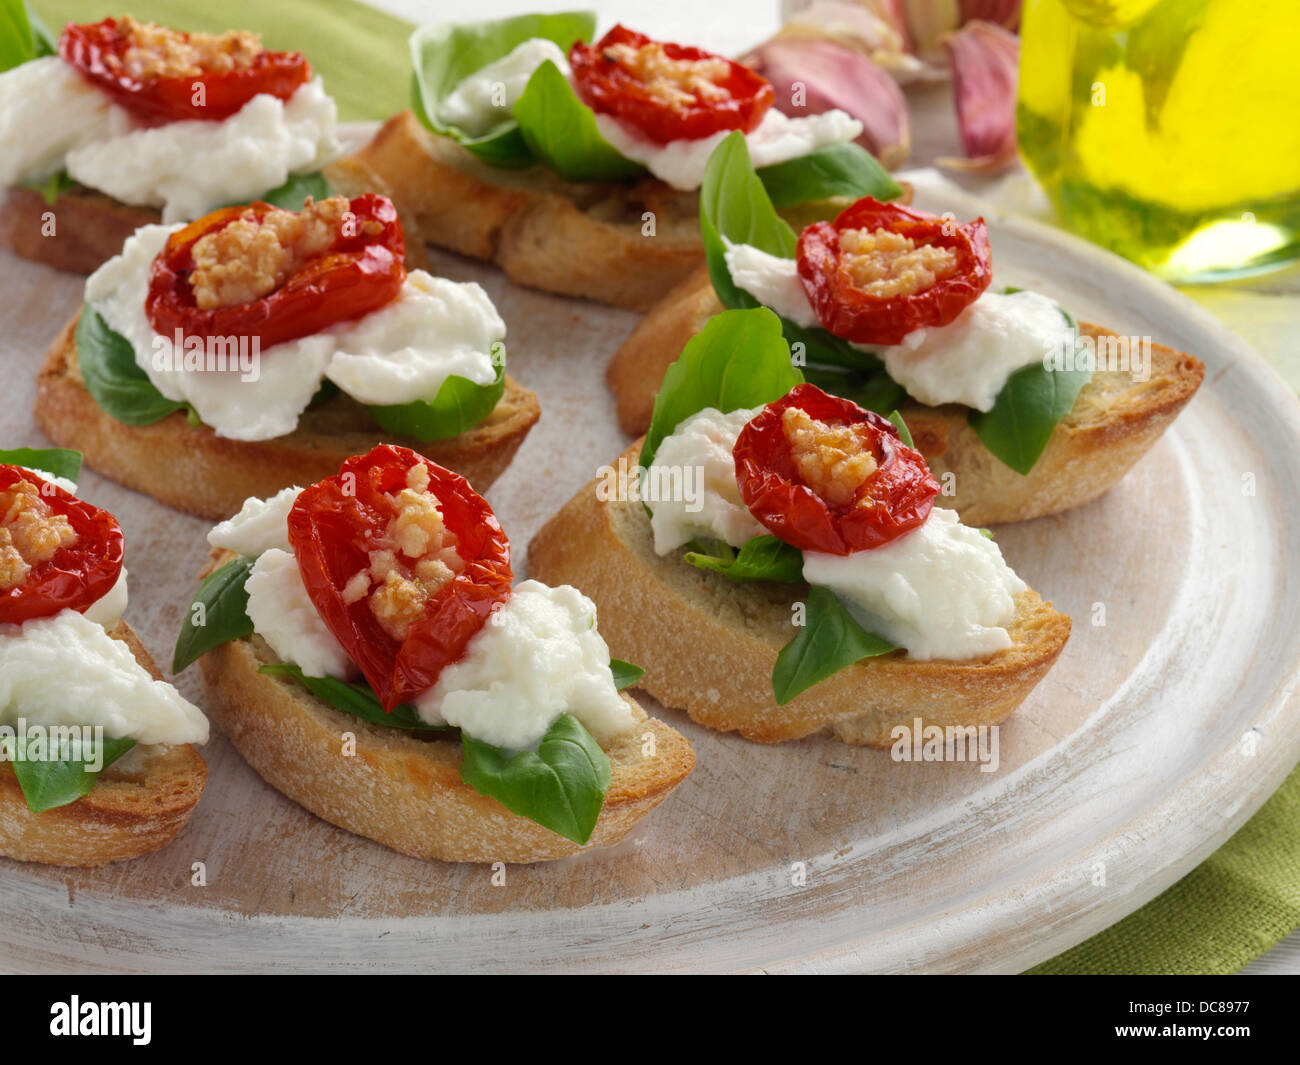 Canapes finger food 28 images finger food ideas to for Italian canape ideas